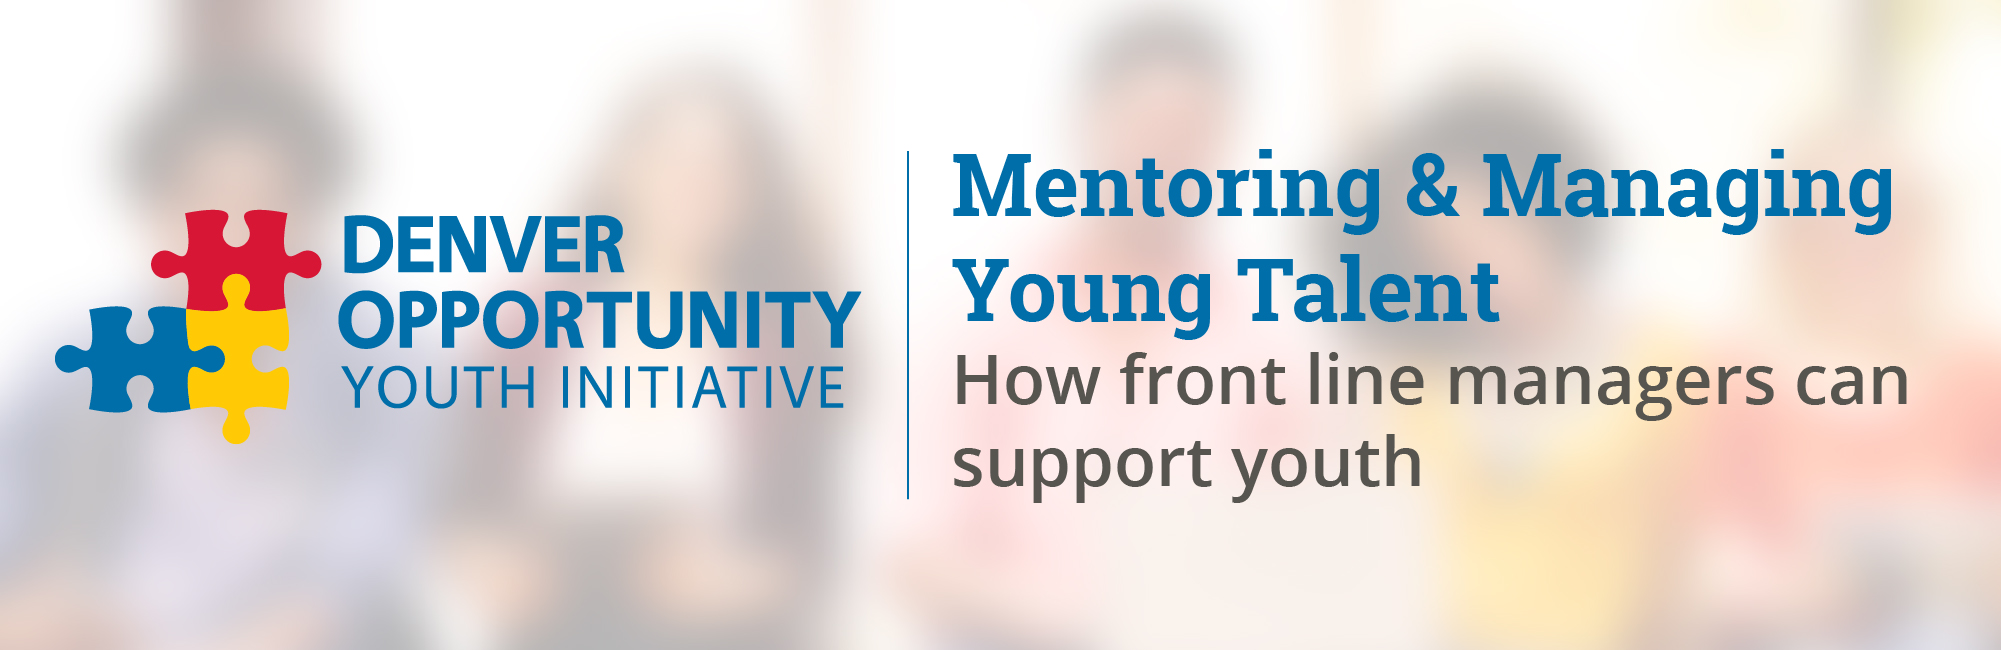 Mentoring & Managing Young Talent